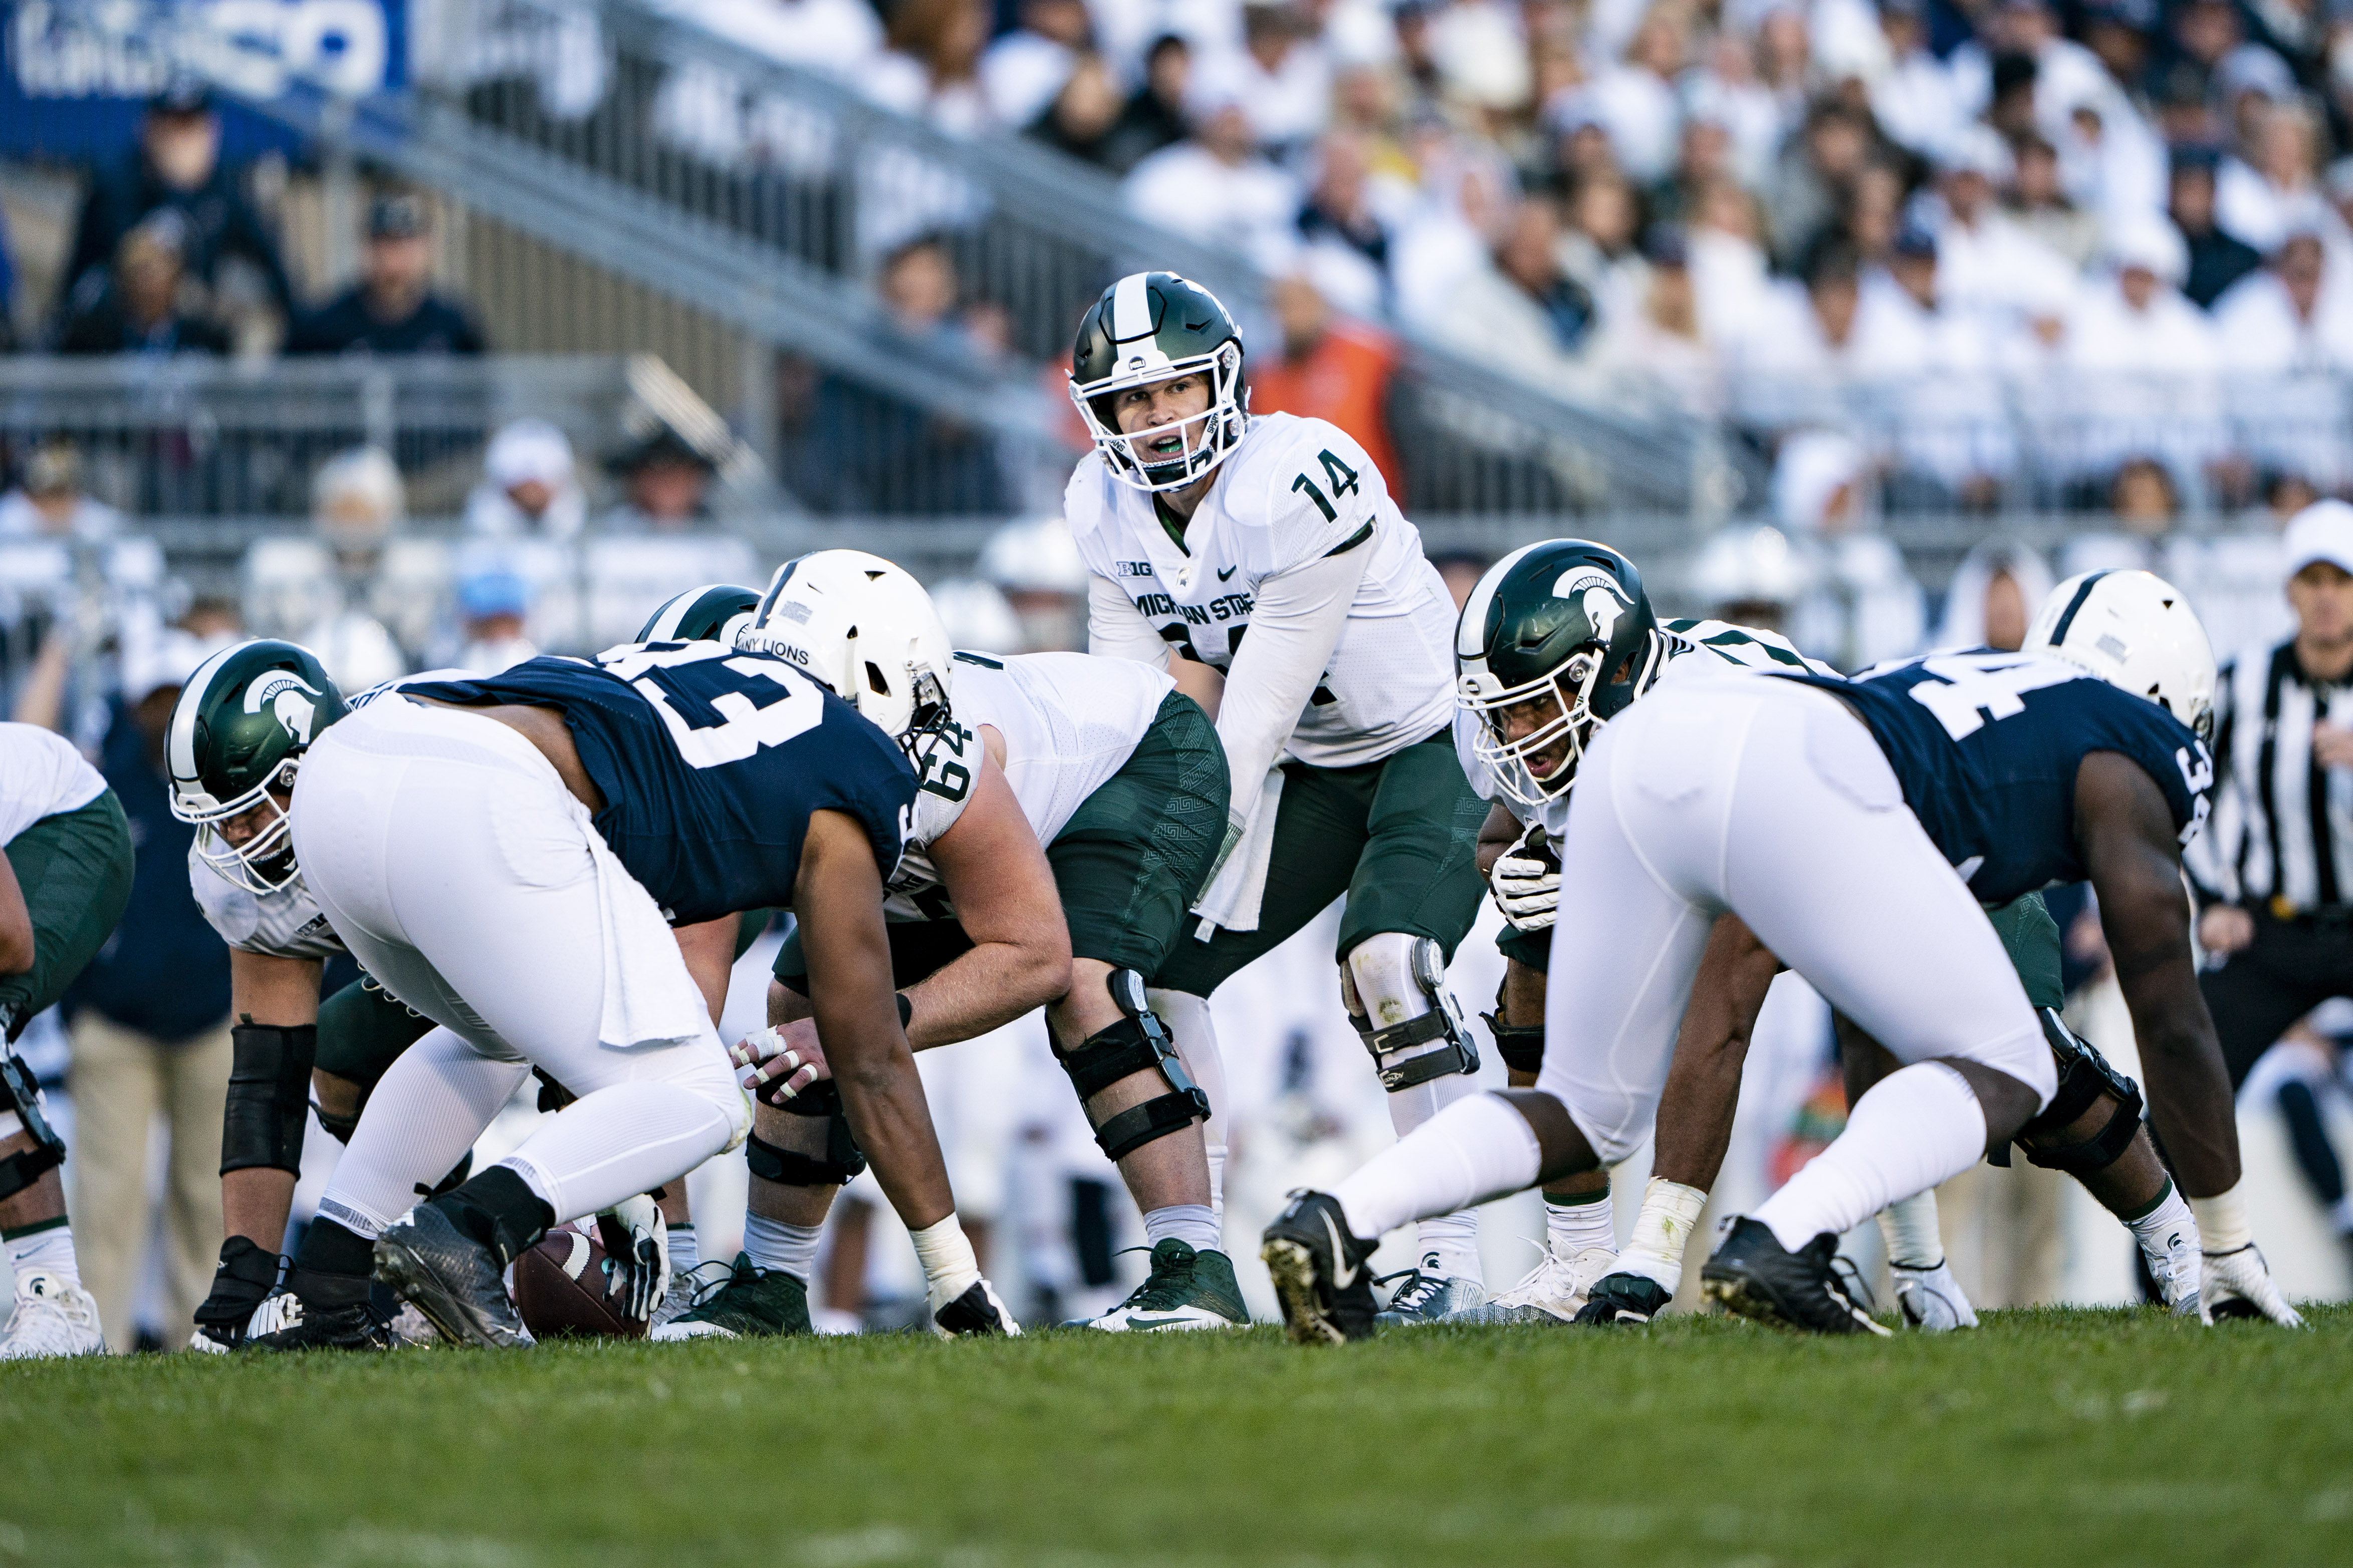 COLLEGE FOOTBALL: OCT 13 Michigan State at Penn State